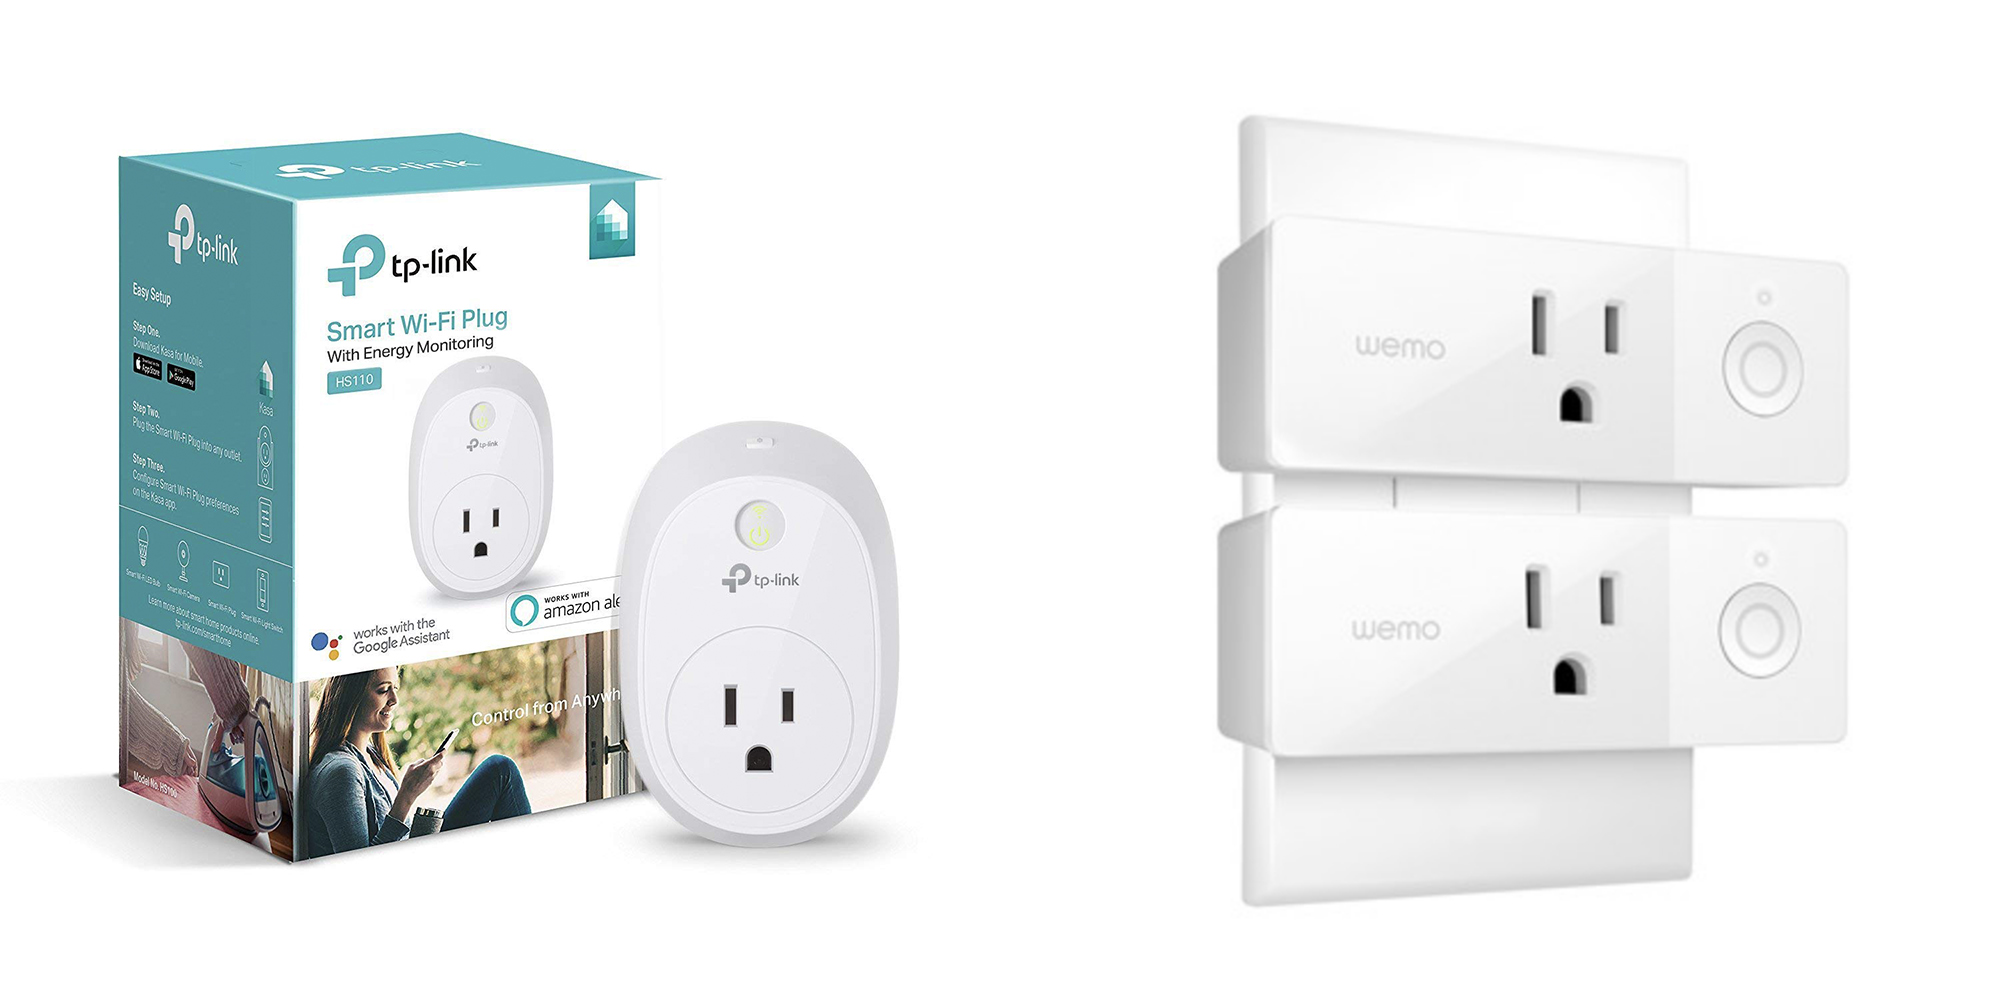 Finally upgrade your home w/ smart plugs from $20: Wemo HomeKit 2-pack $30, more